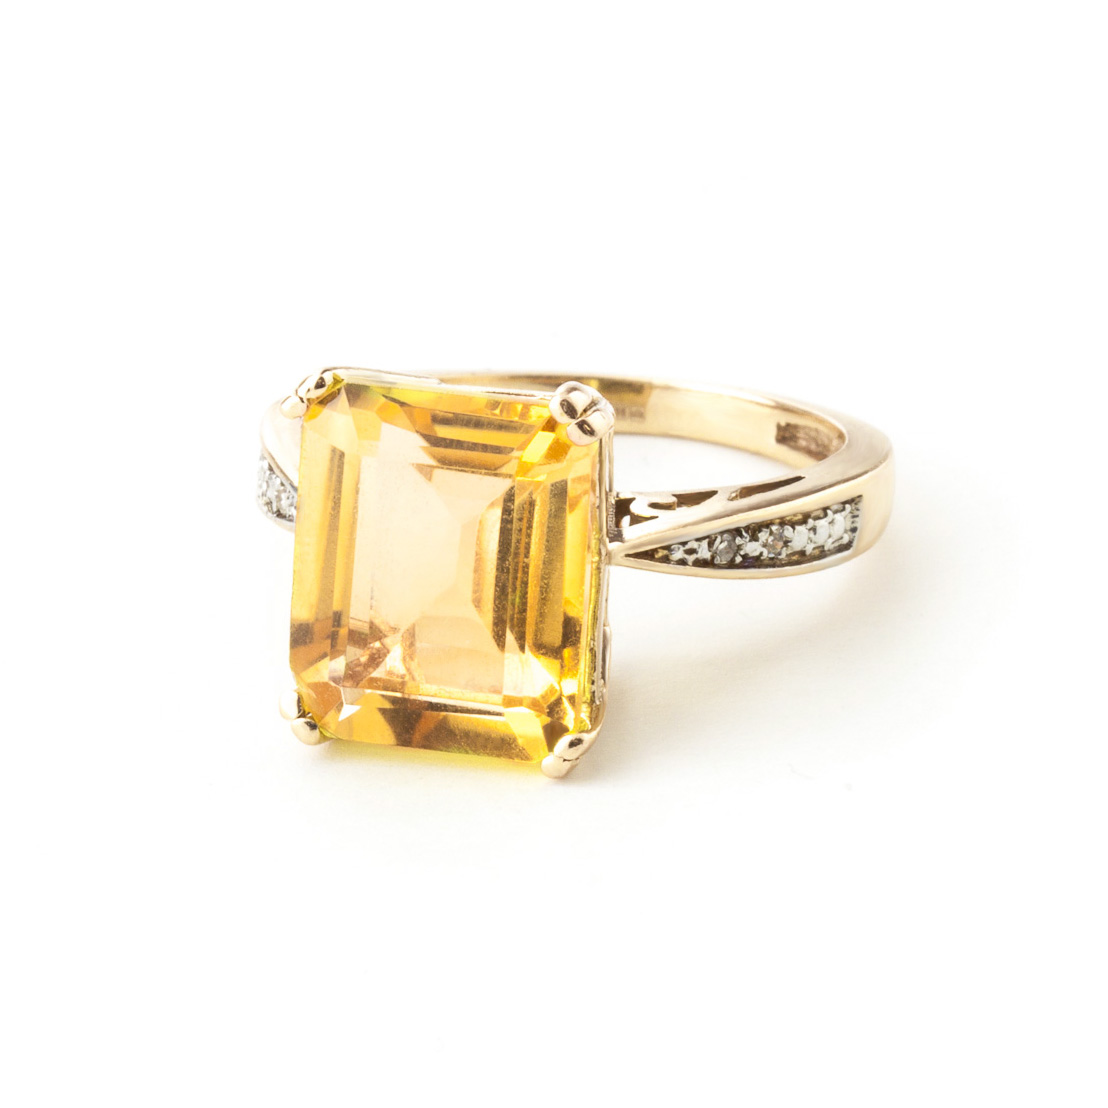 Octagon Cut Citrine Ring 5.62 ctw in 9ct Gold